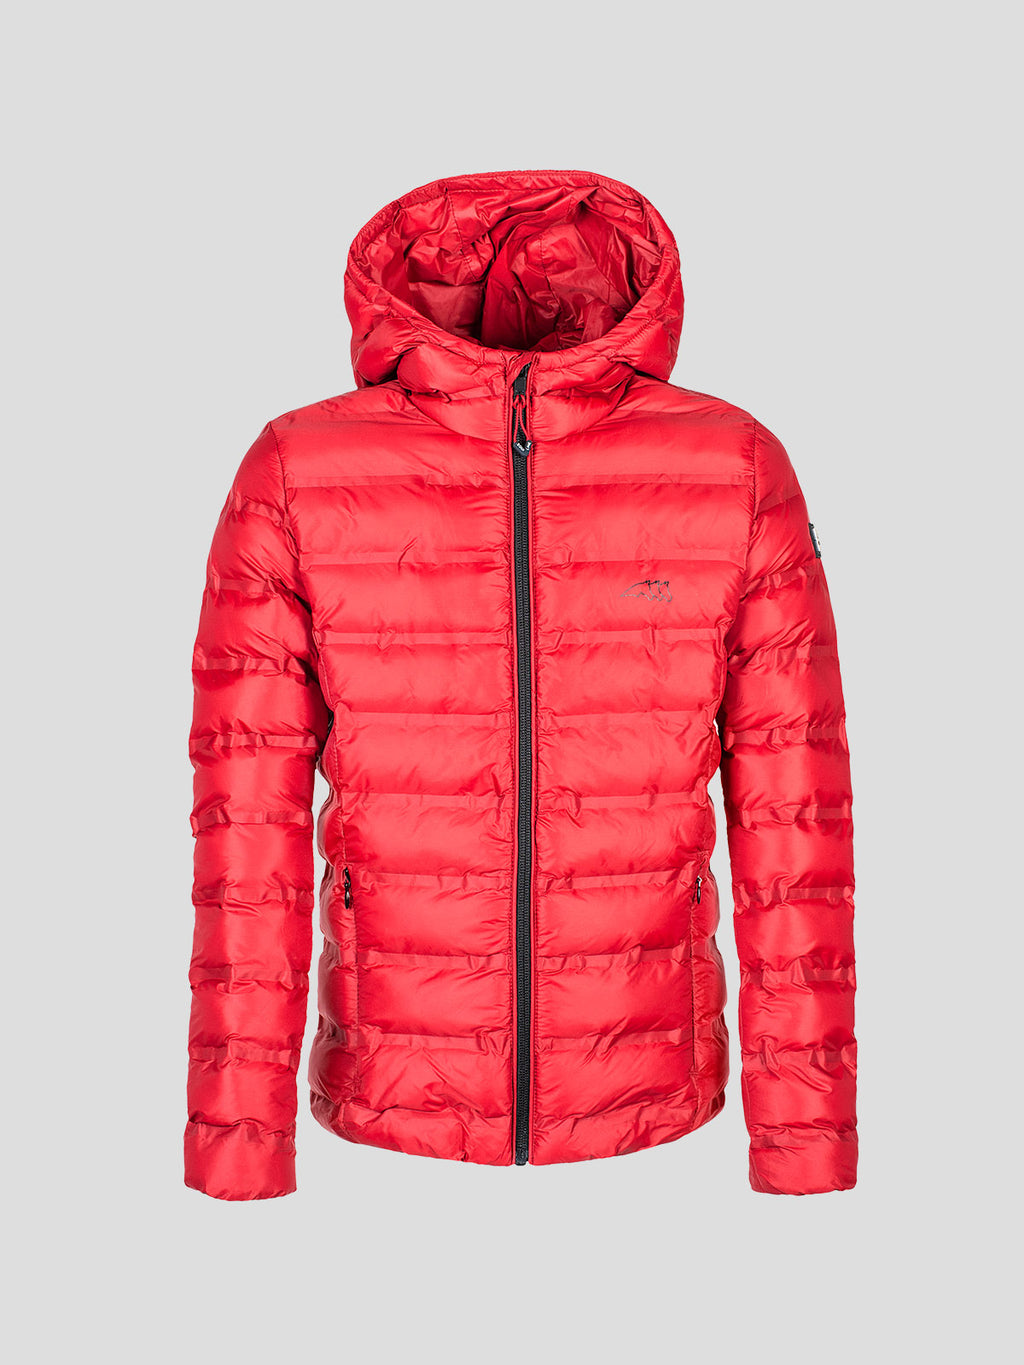 Kid's Puffy Winter Jacket